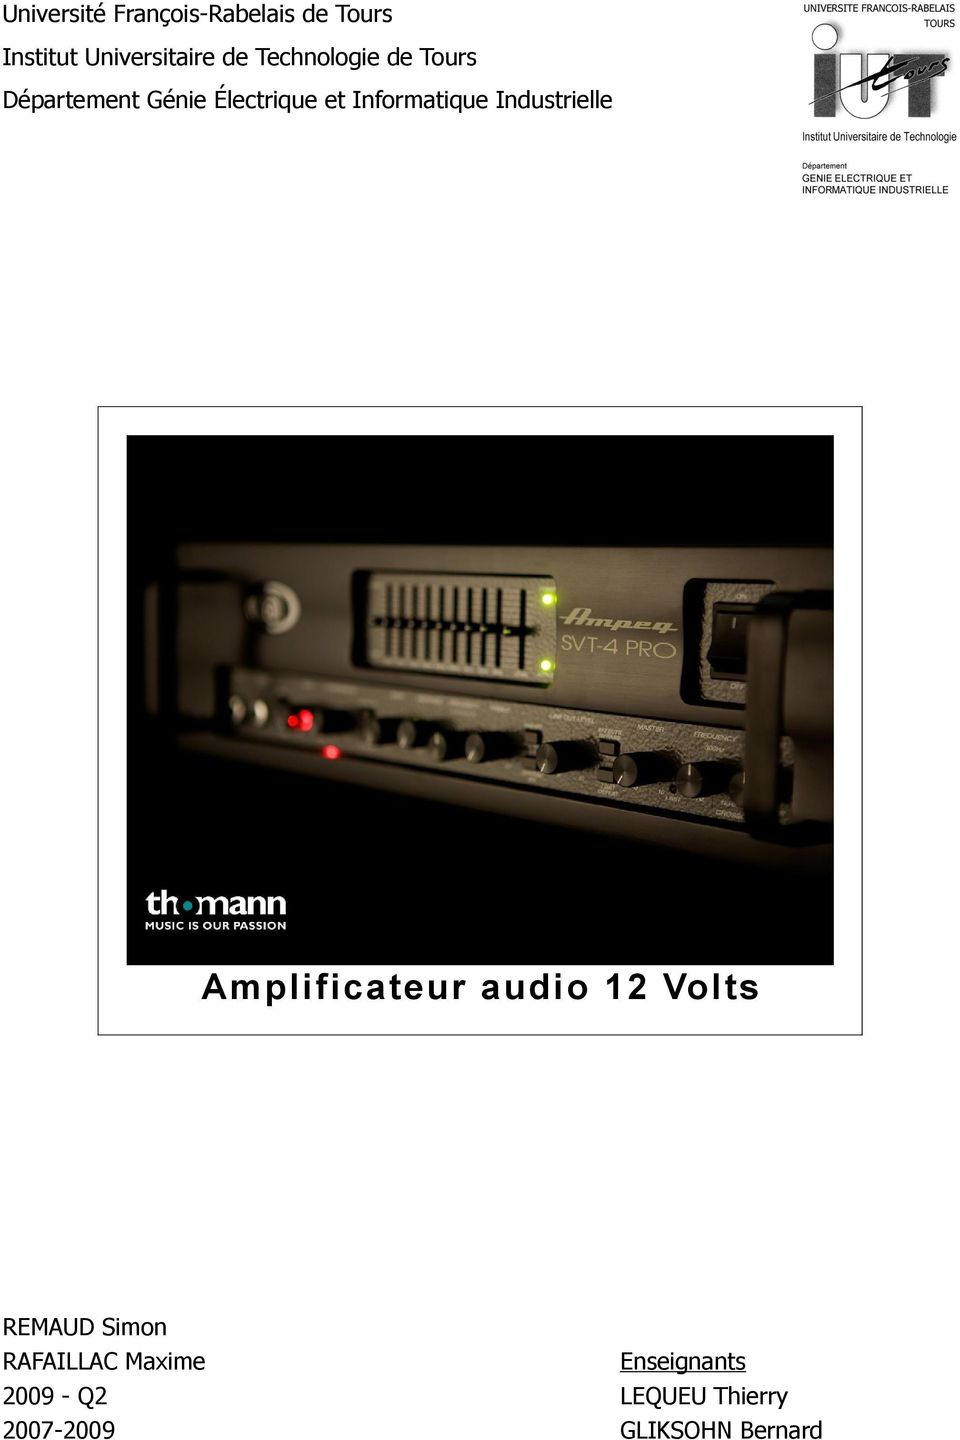 Amplificateur Audio 12 Volts Pdf Panel Tda1562q 36 Watt Power Amplifier Circuit And Explanation Industrielle Remaud Simon Rafaillac